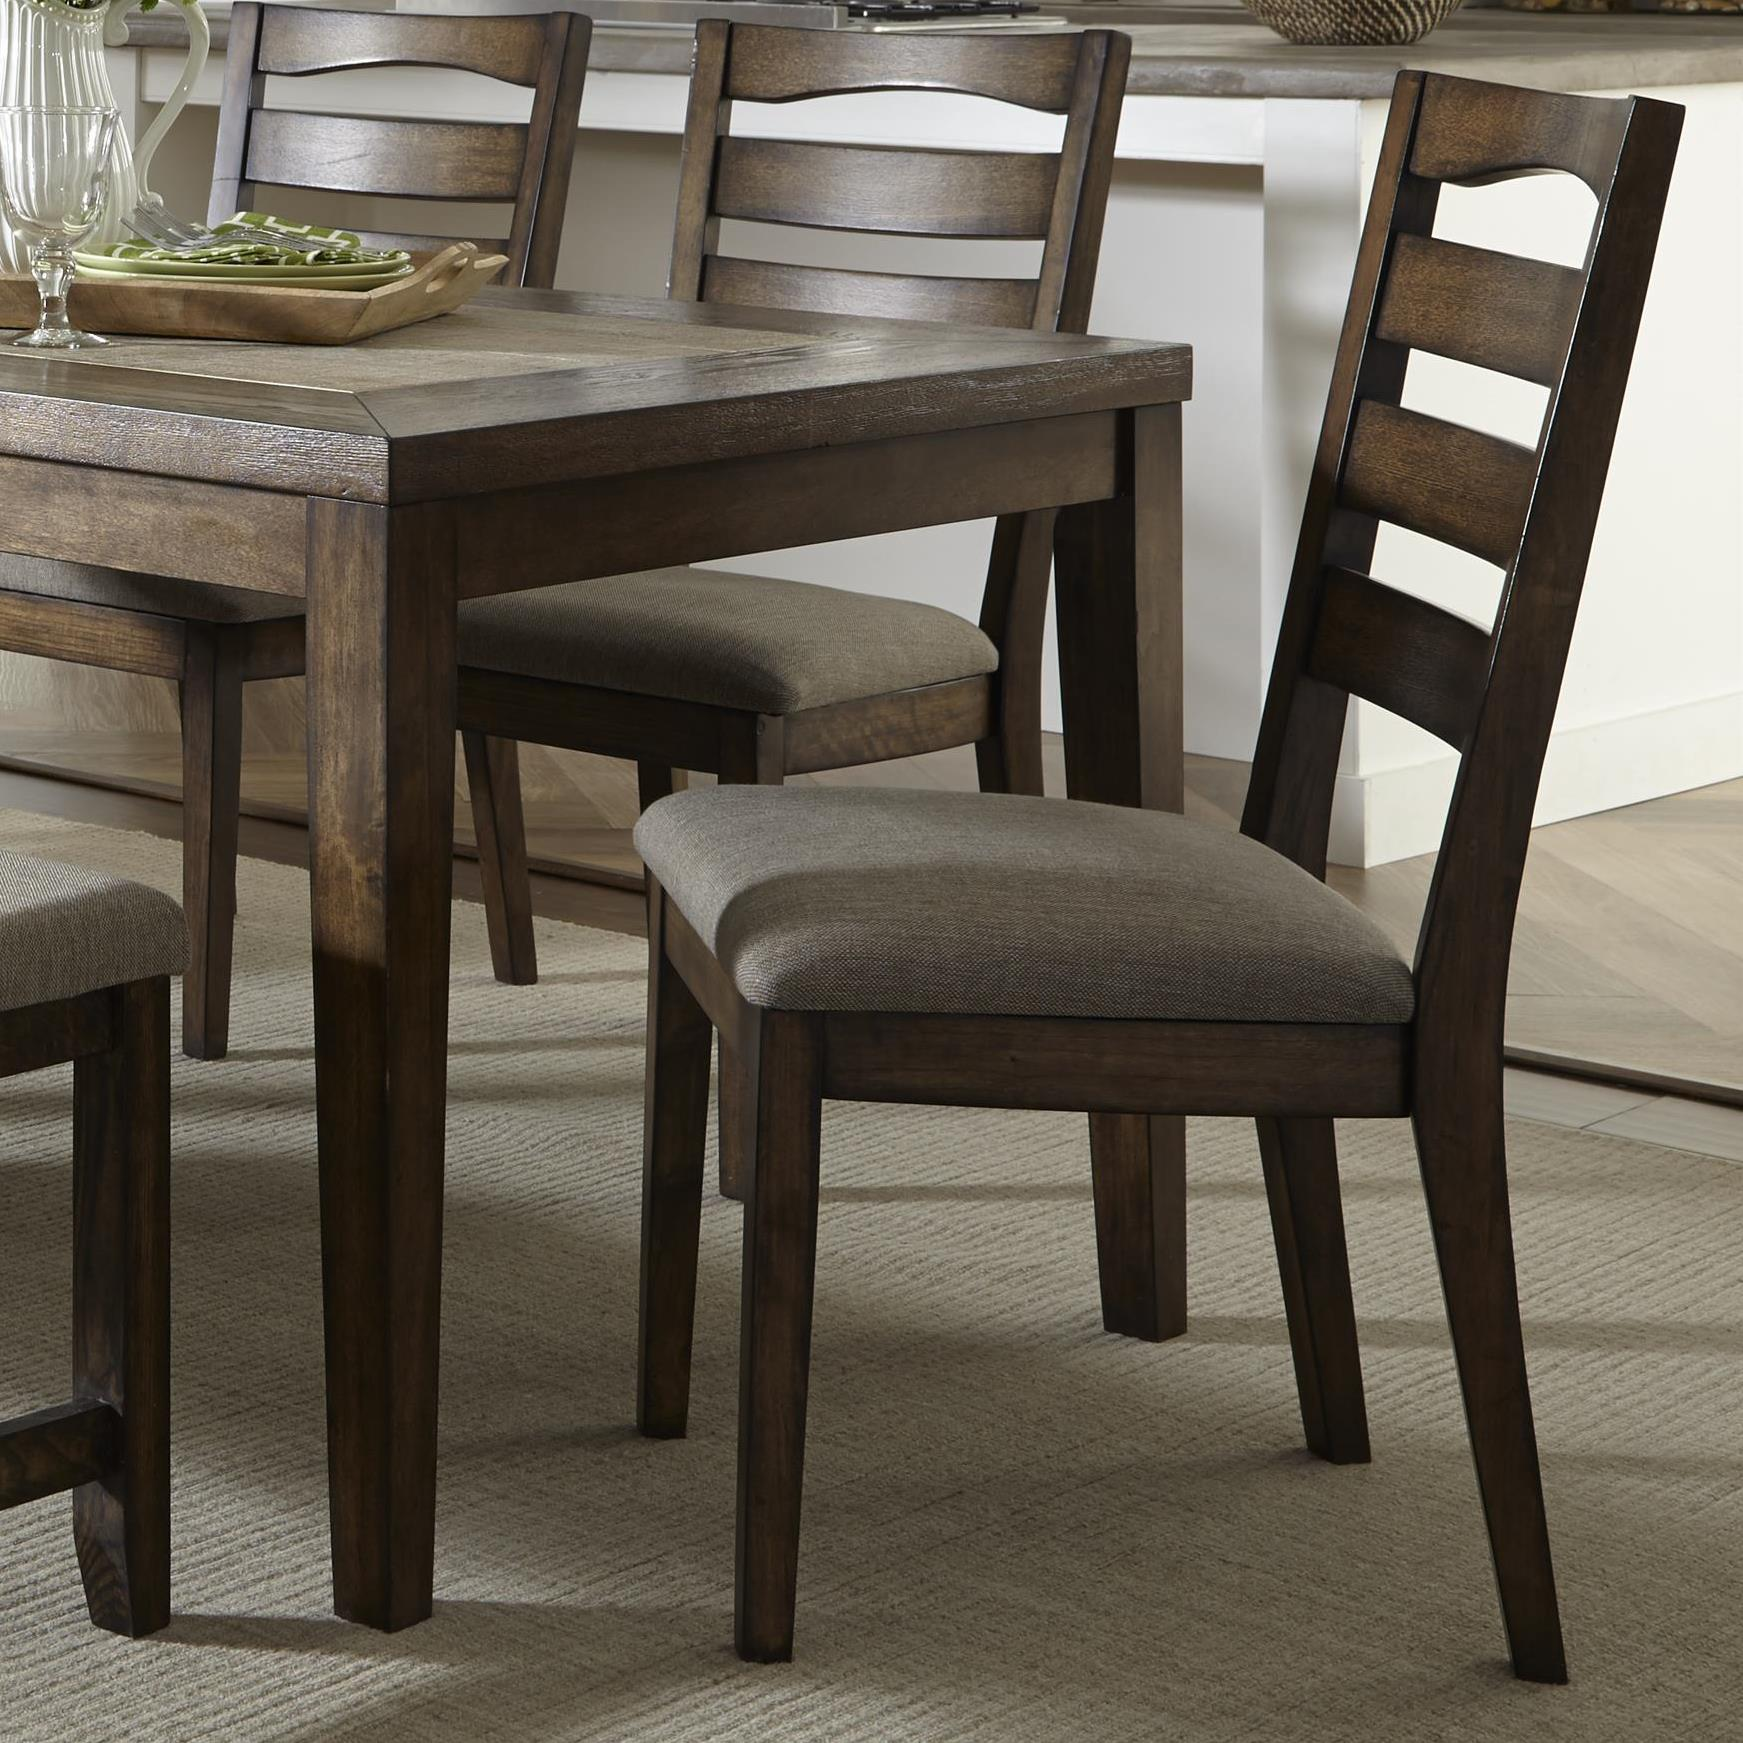 Progressive Furniture Forest Brook Dining Chair - Item Number: P378D-61